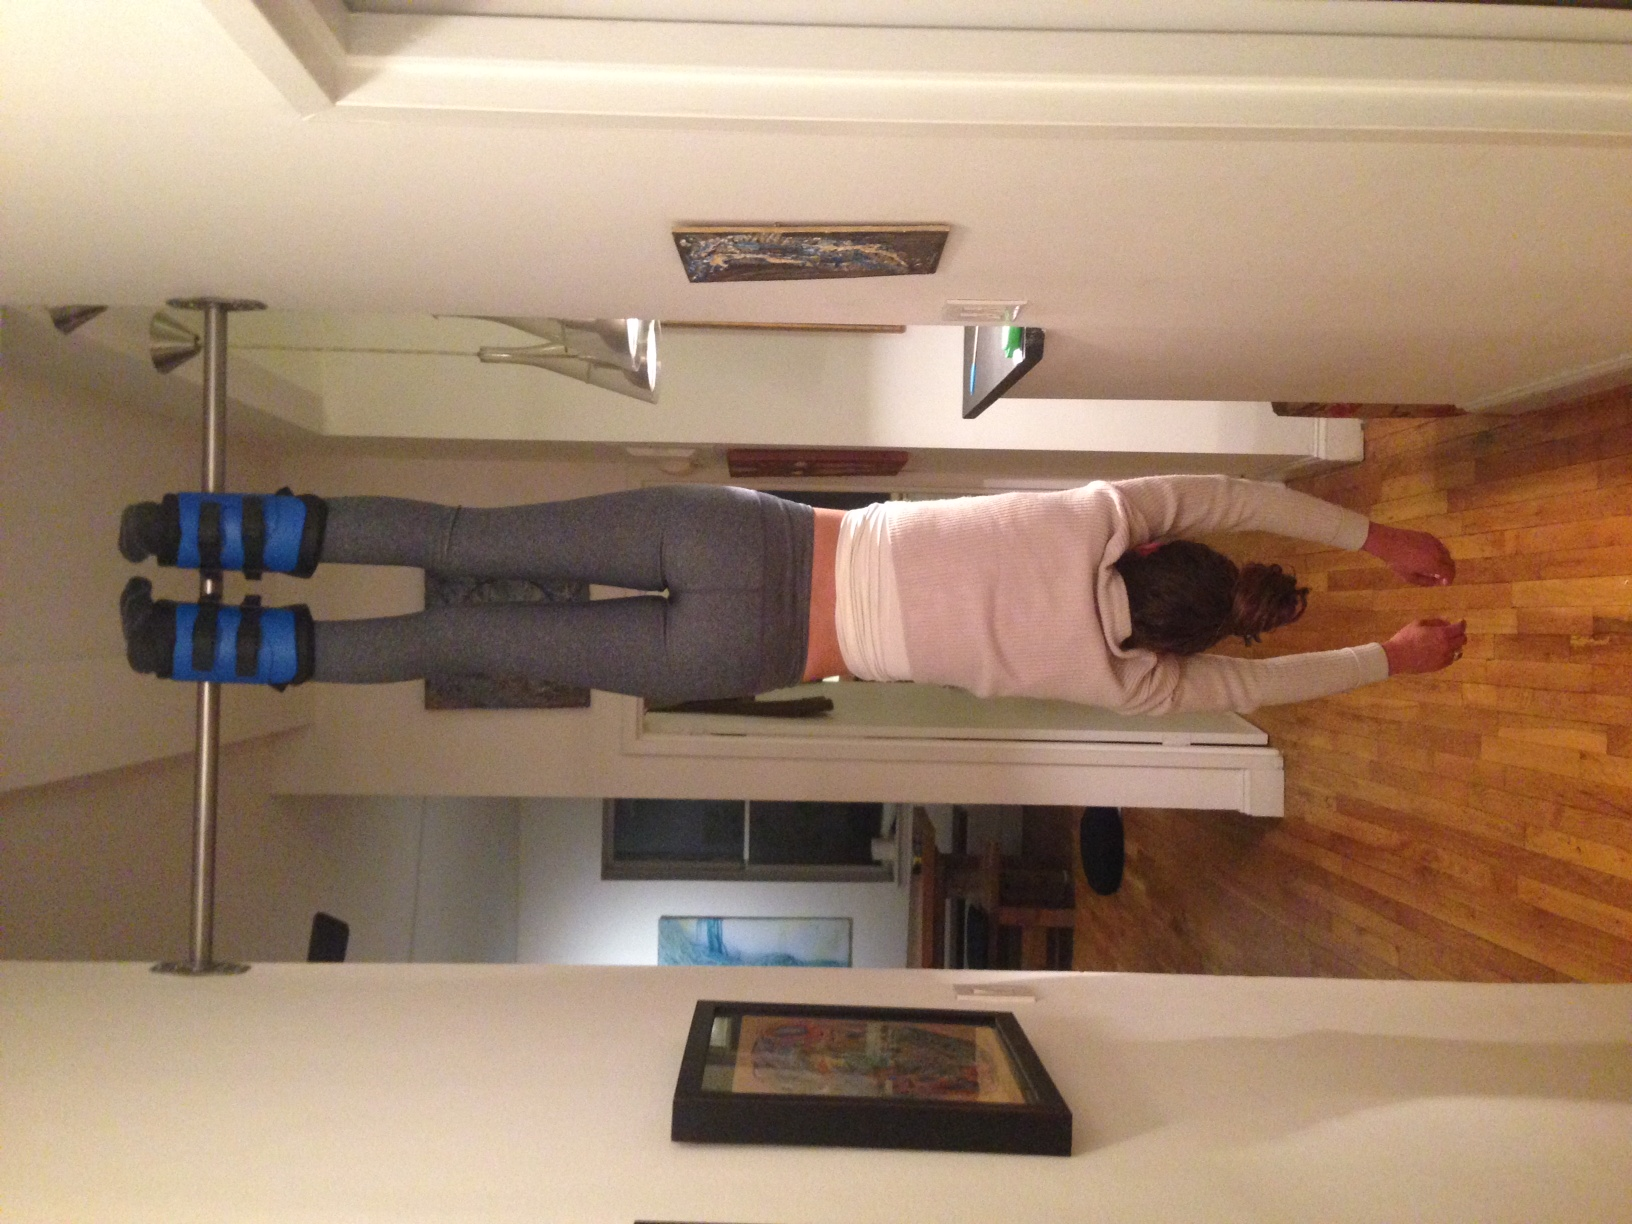 Dr. Nikki in gravity boots, decompressing her spine and it feels amazing!